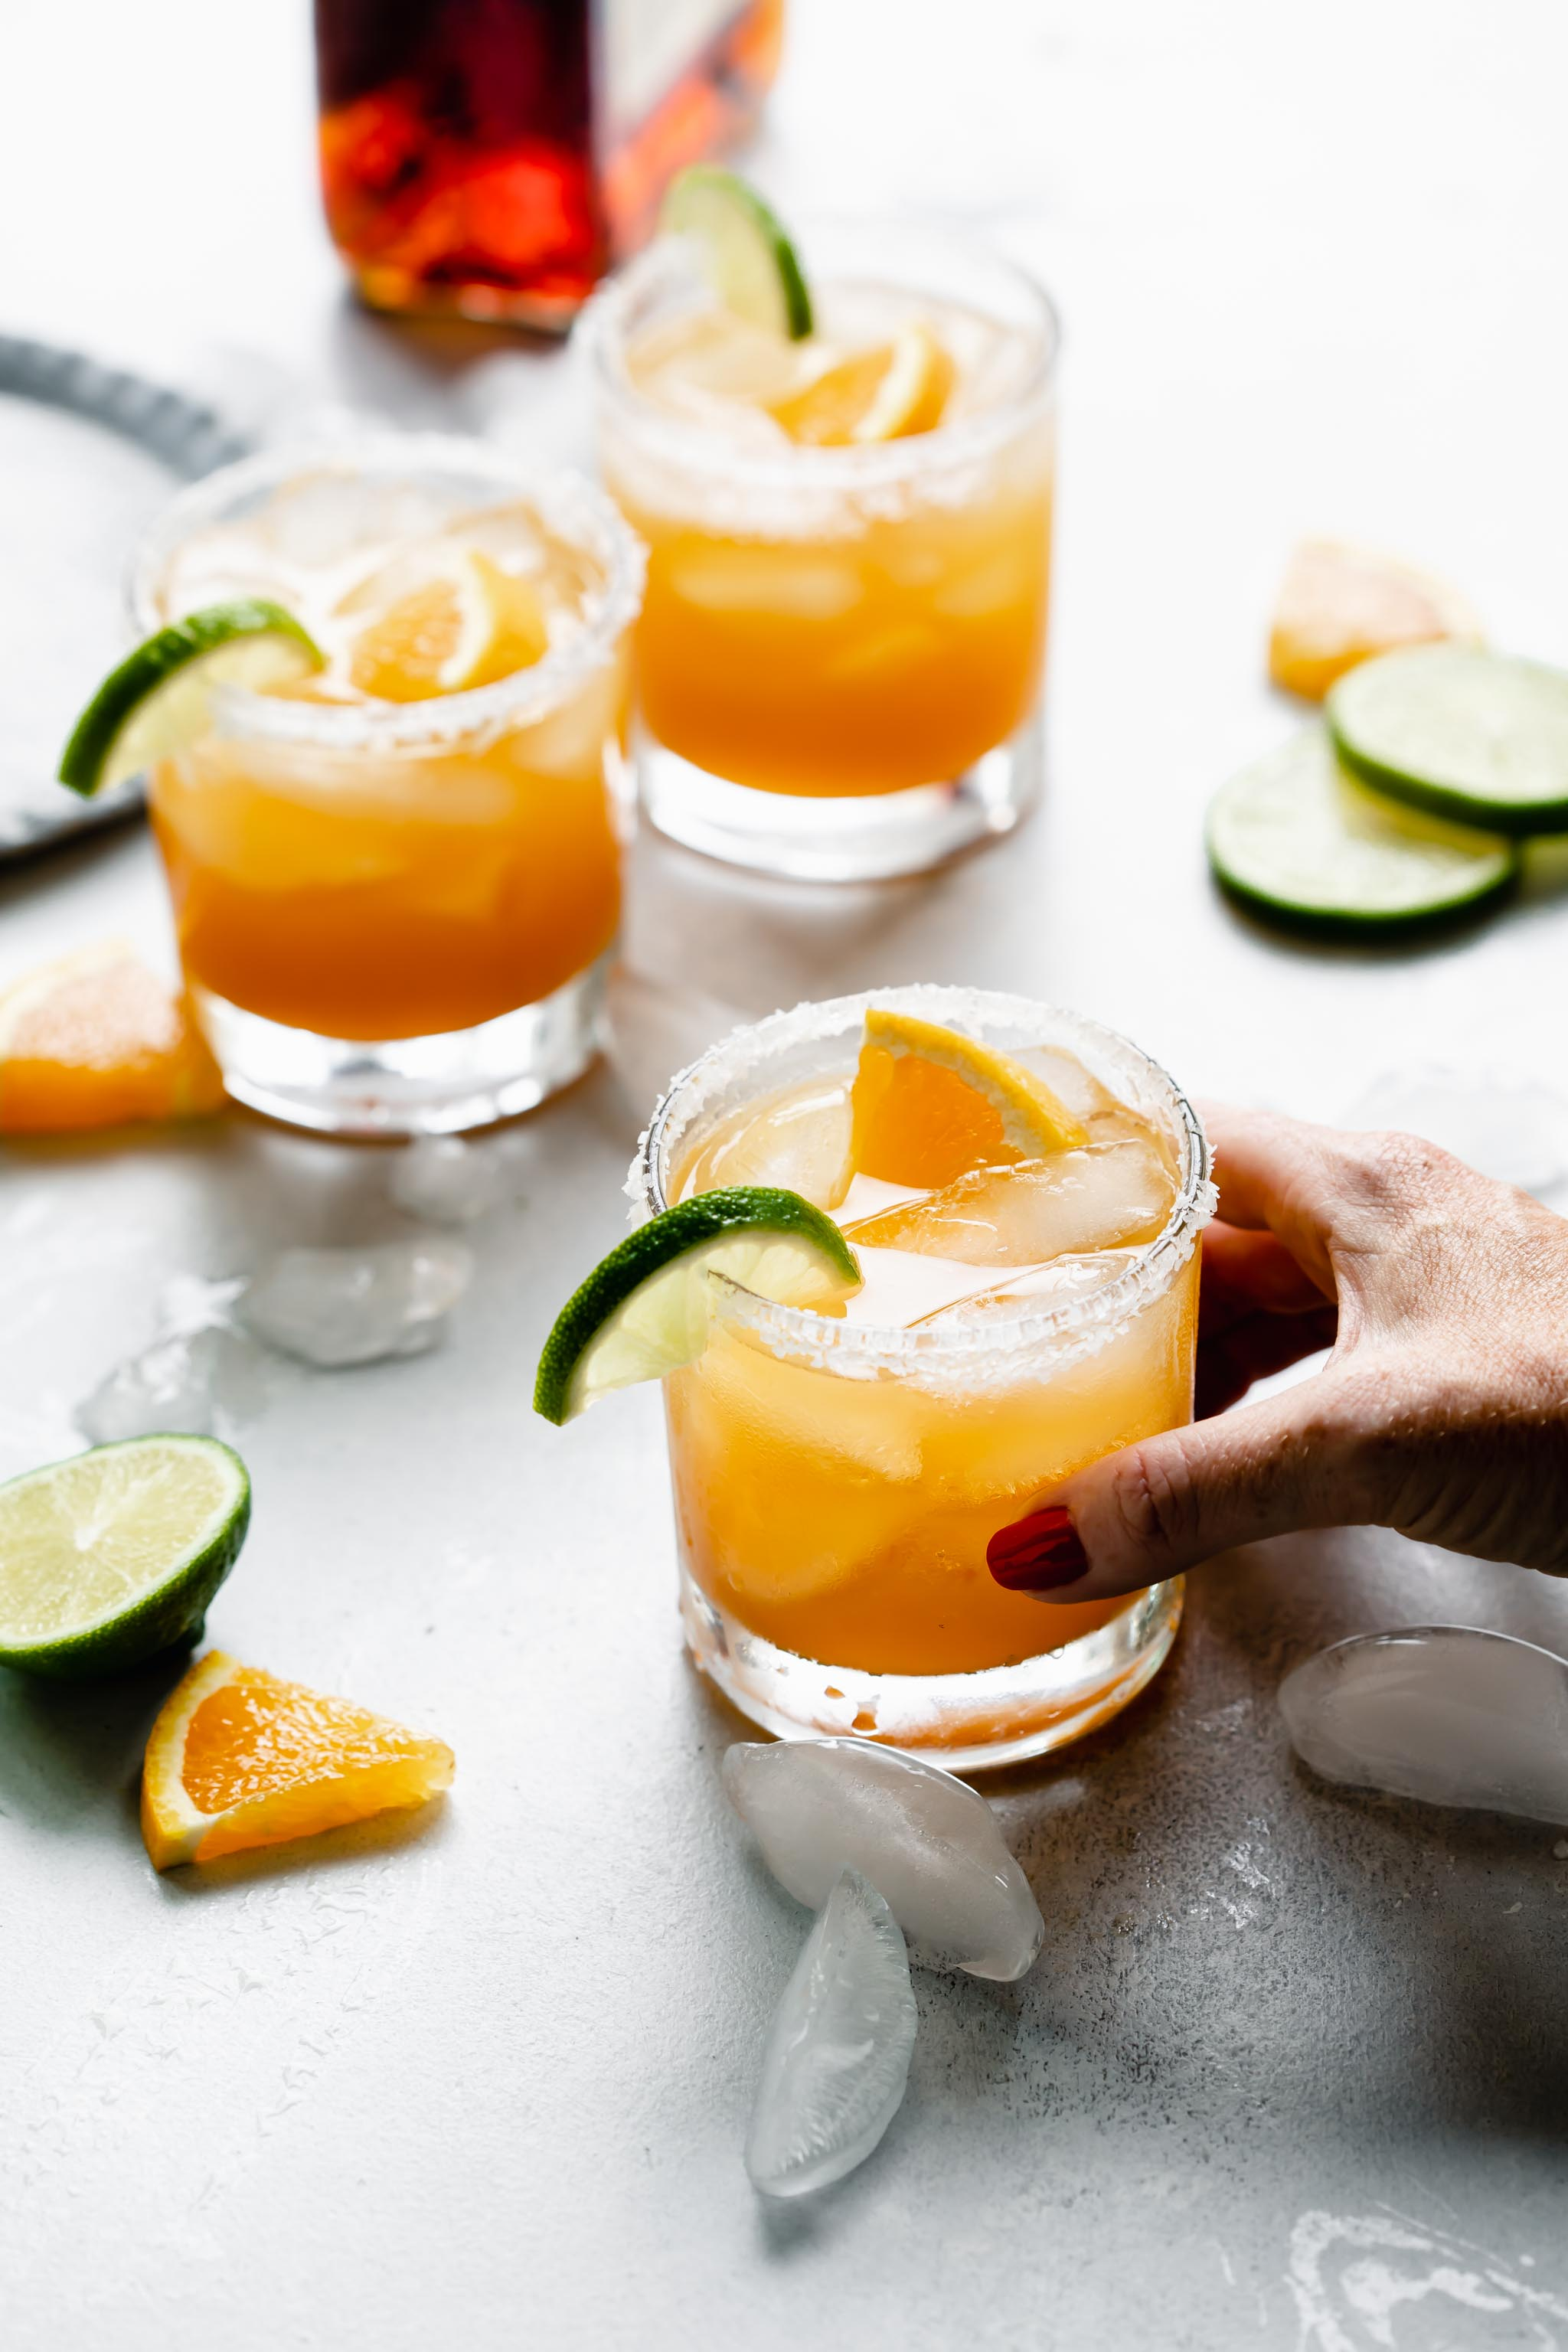 Hand holding glass of Italian Margarita rimmed with salt and garnished with orange and lime slices.